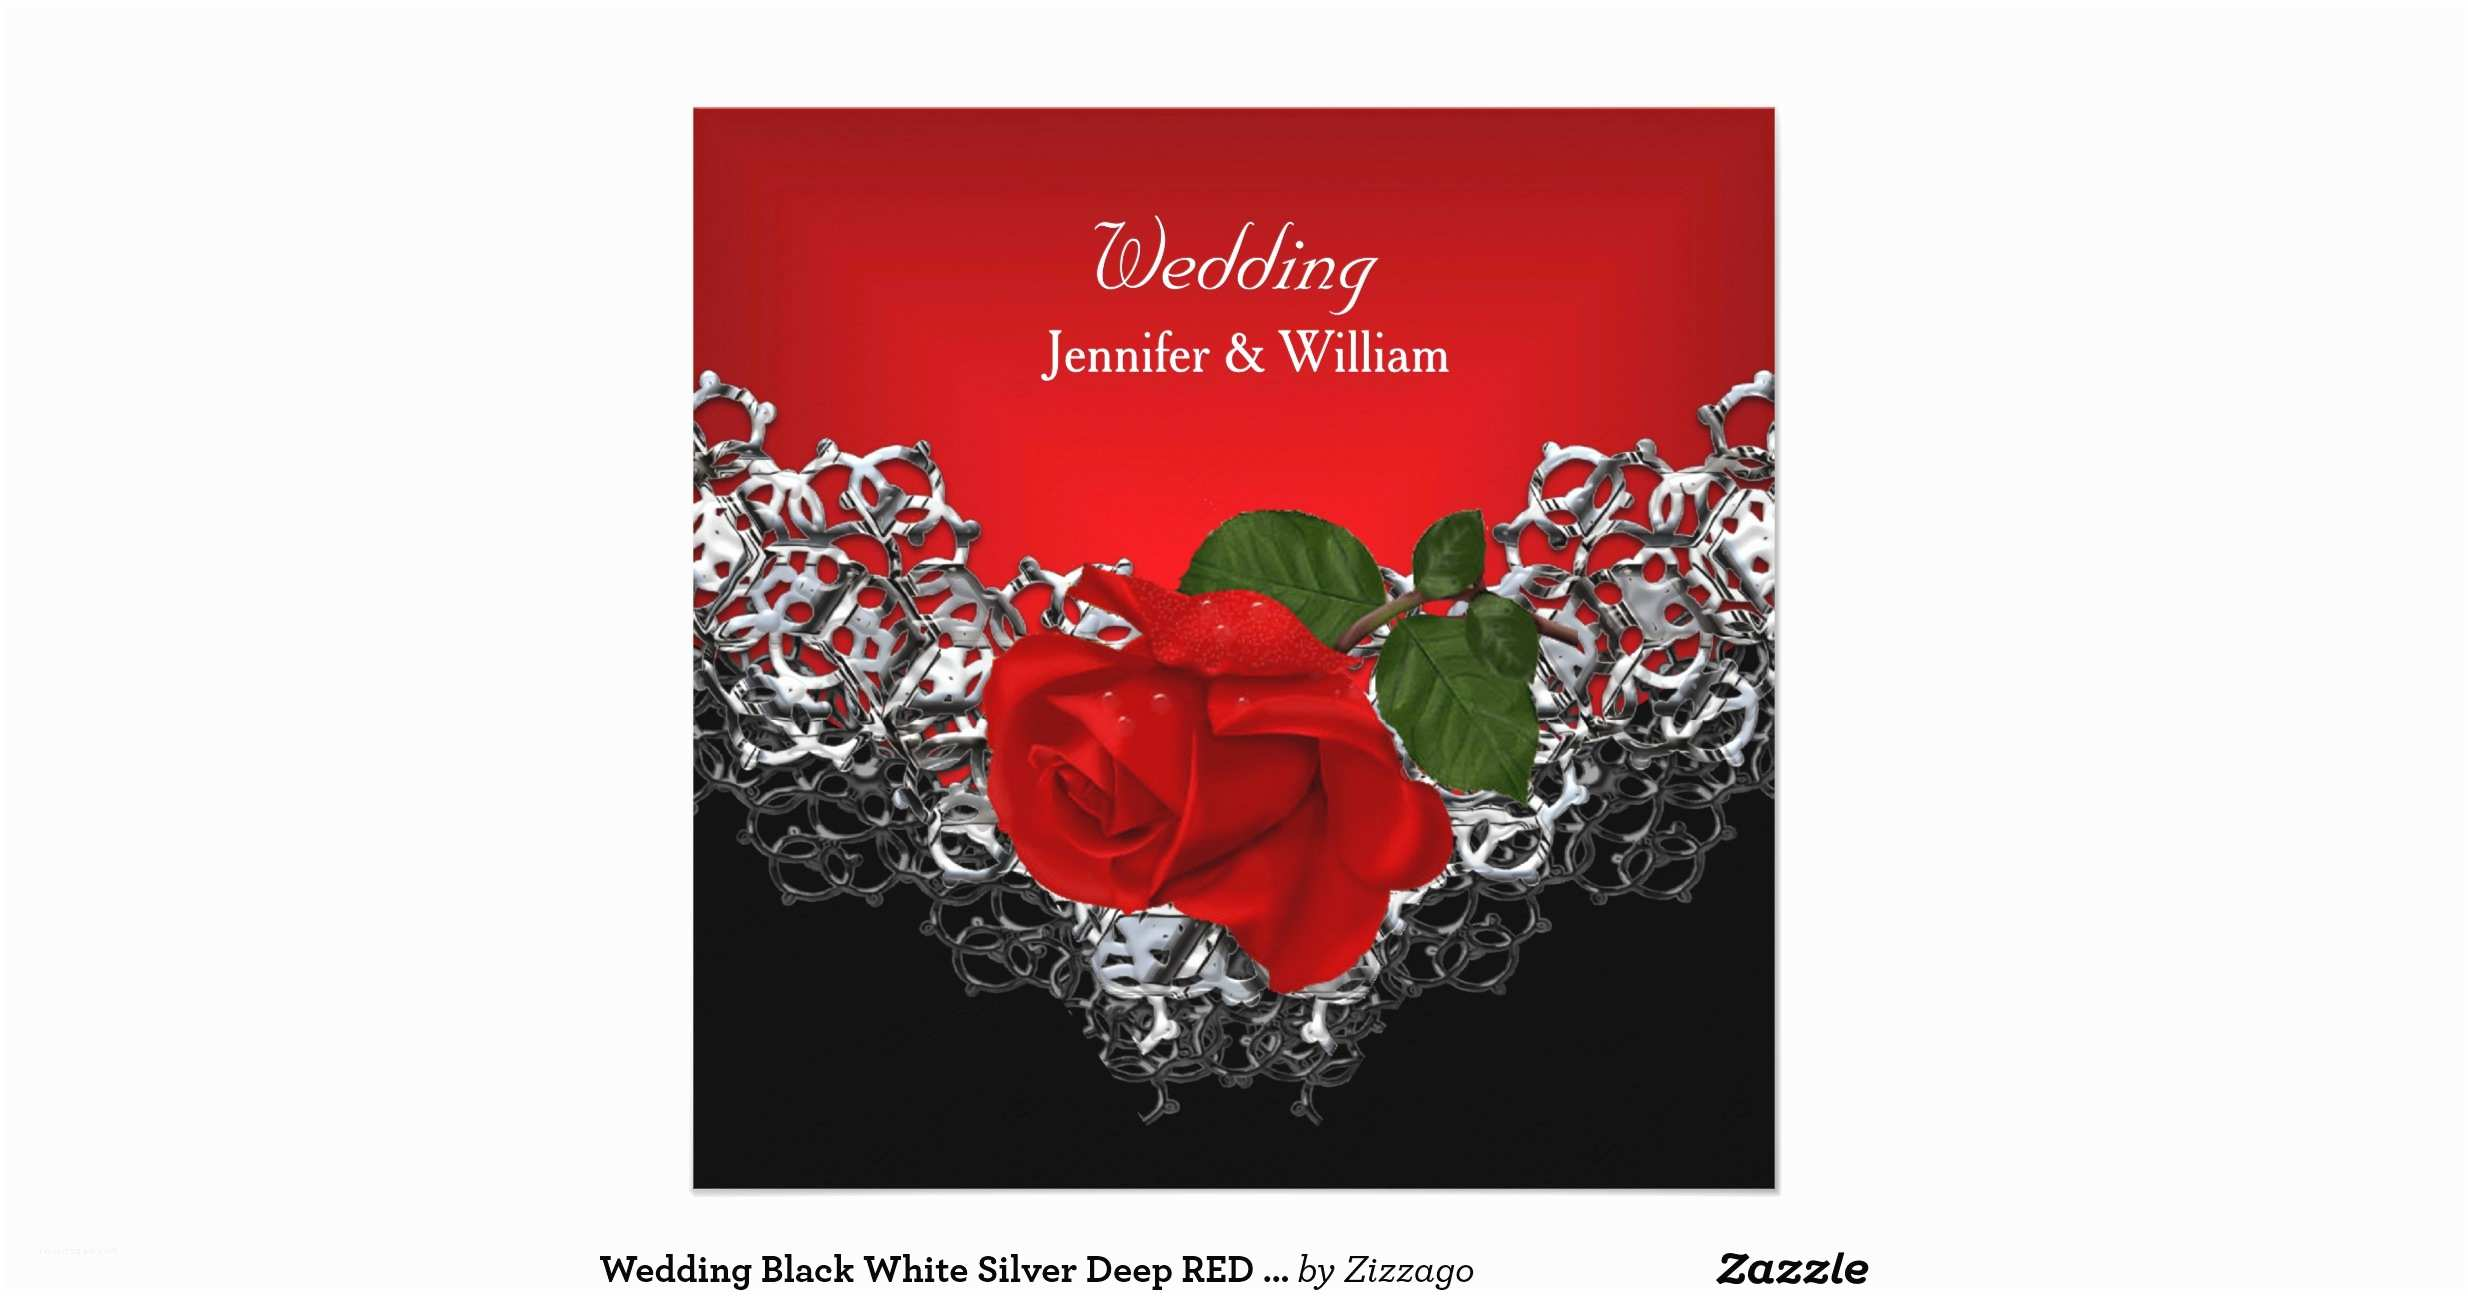 Red White and Silver Wedding Invitations Wedding Black White Silver Deep Red Rose Invitation